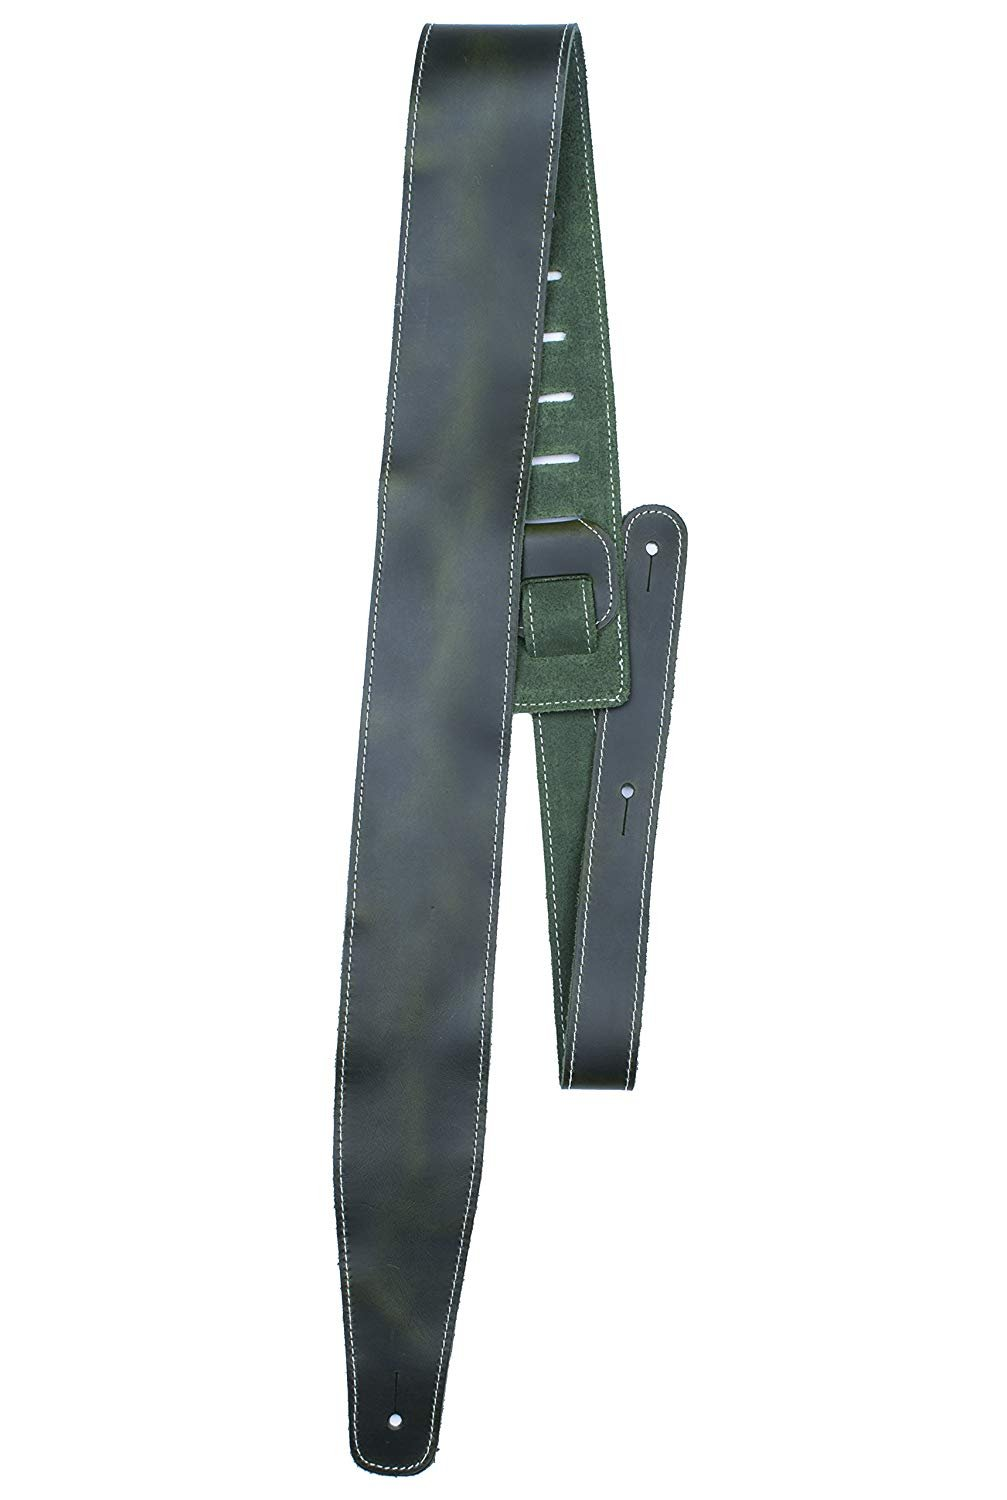 2.5 Oil Leather Series Green Gtr Strap